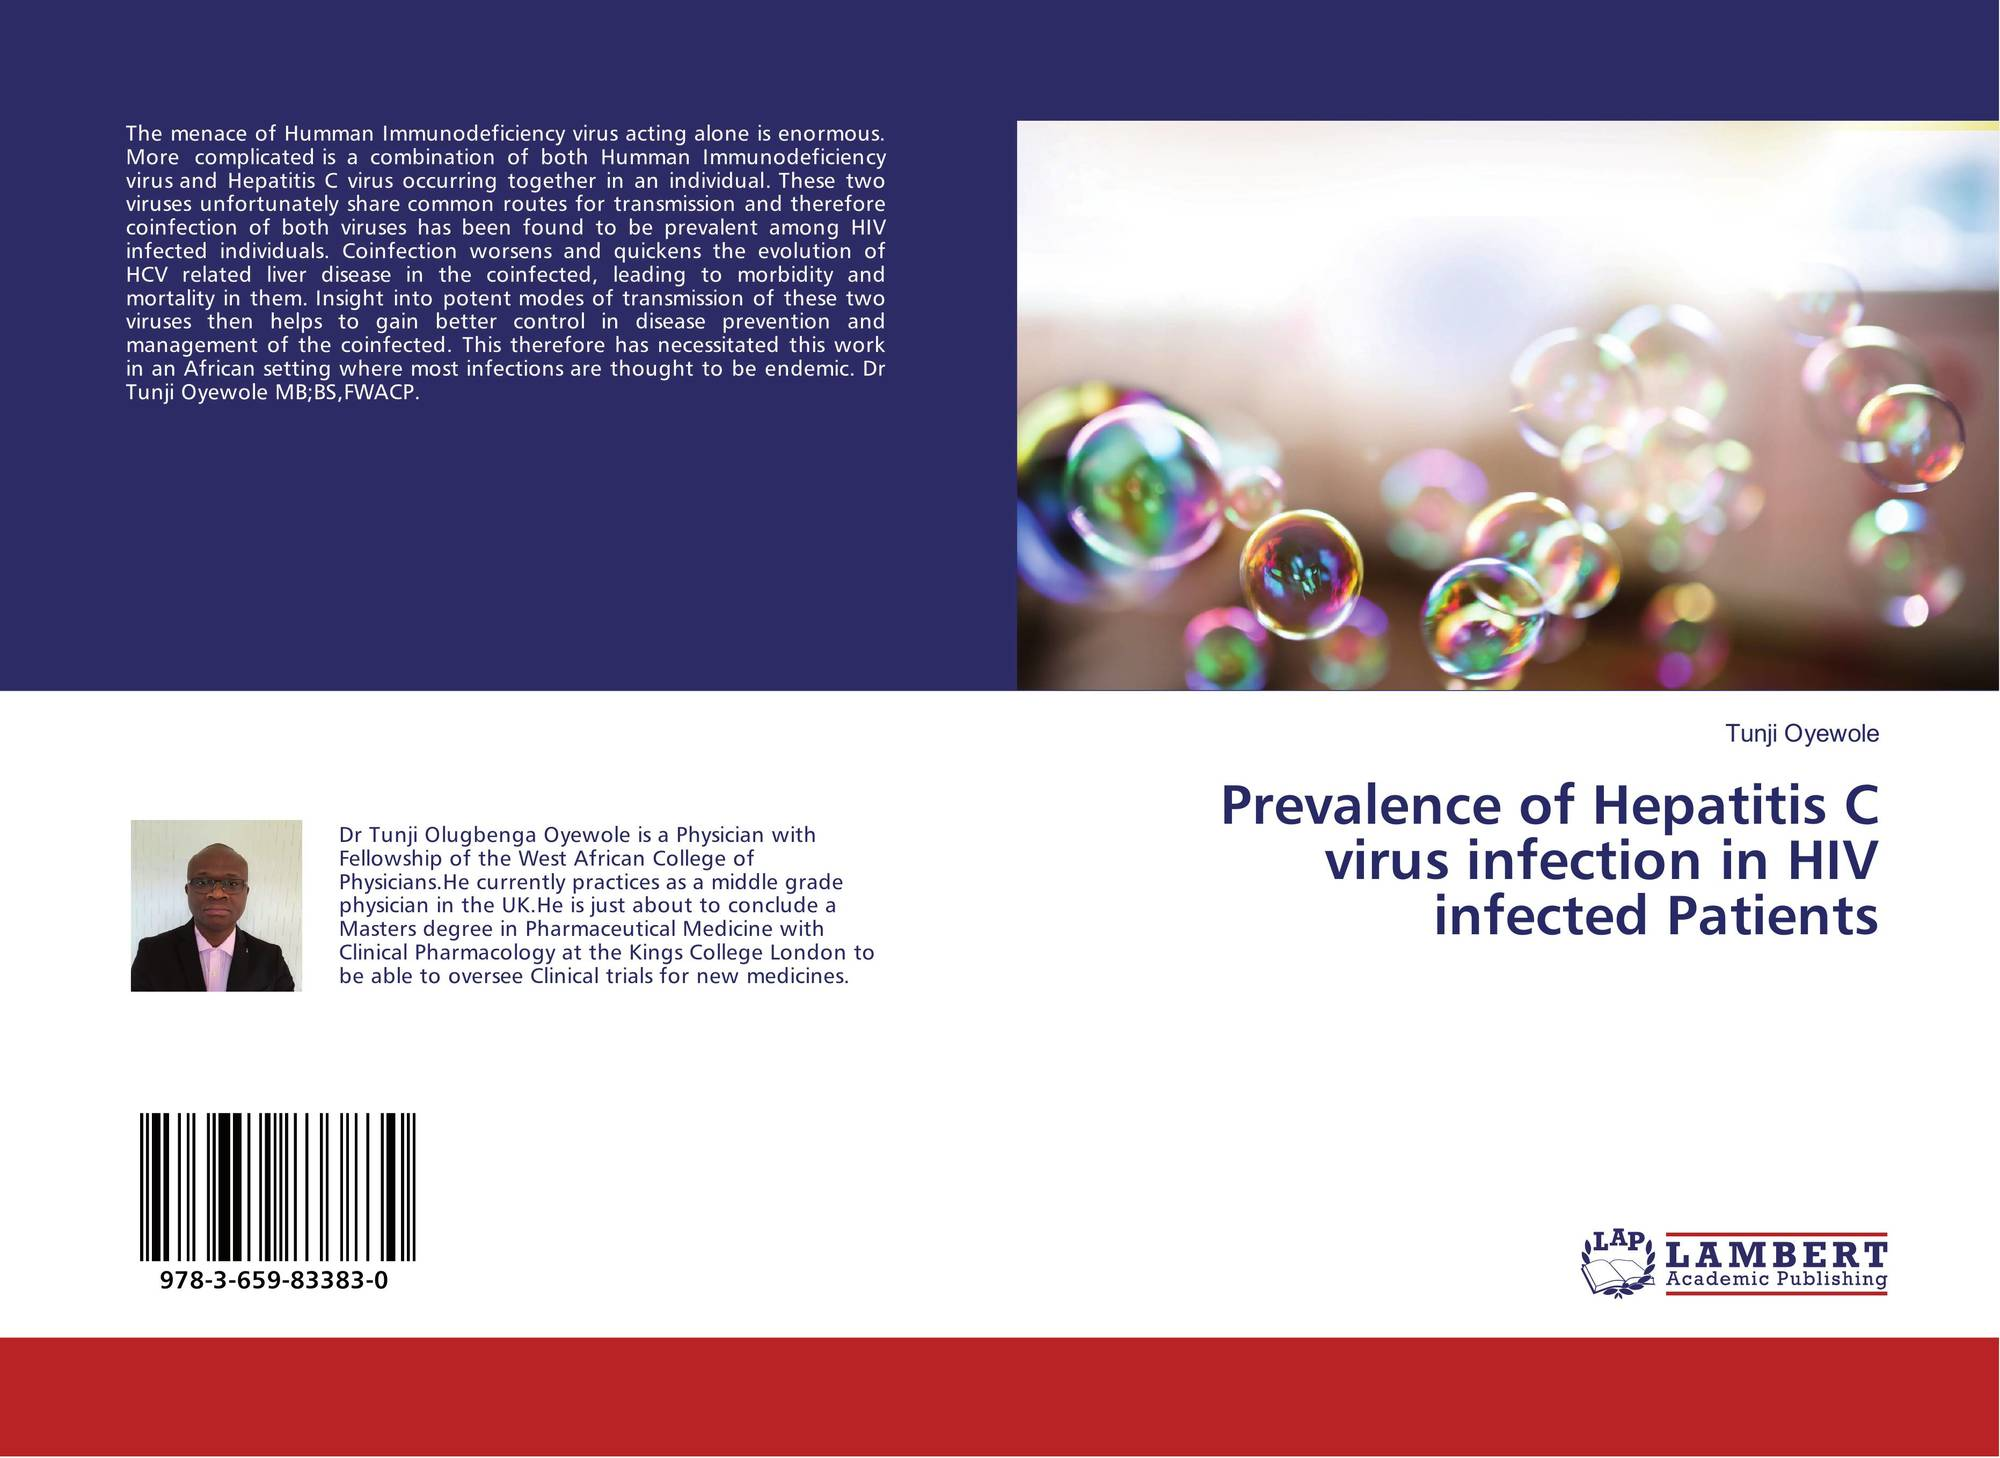 hepatitis e virus infection in hiv infected persons Infection with hepatitis e virus (hev) can cause rapid liver fibrosis in people with  hiv who have low cd4 cell counts, case reports published in.